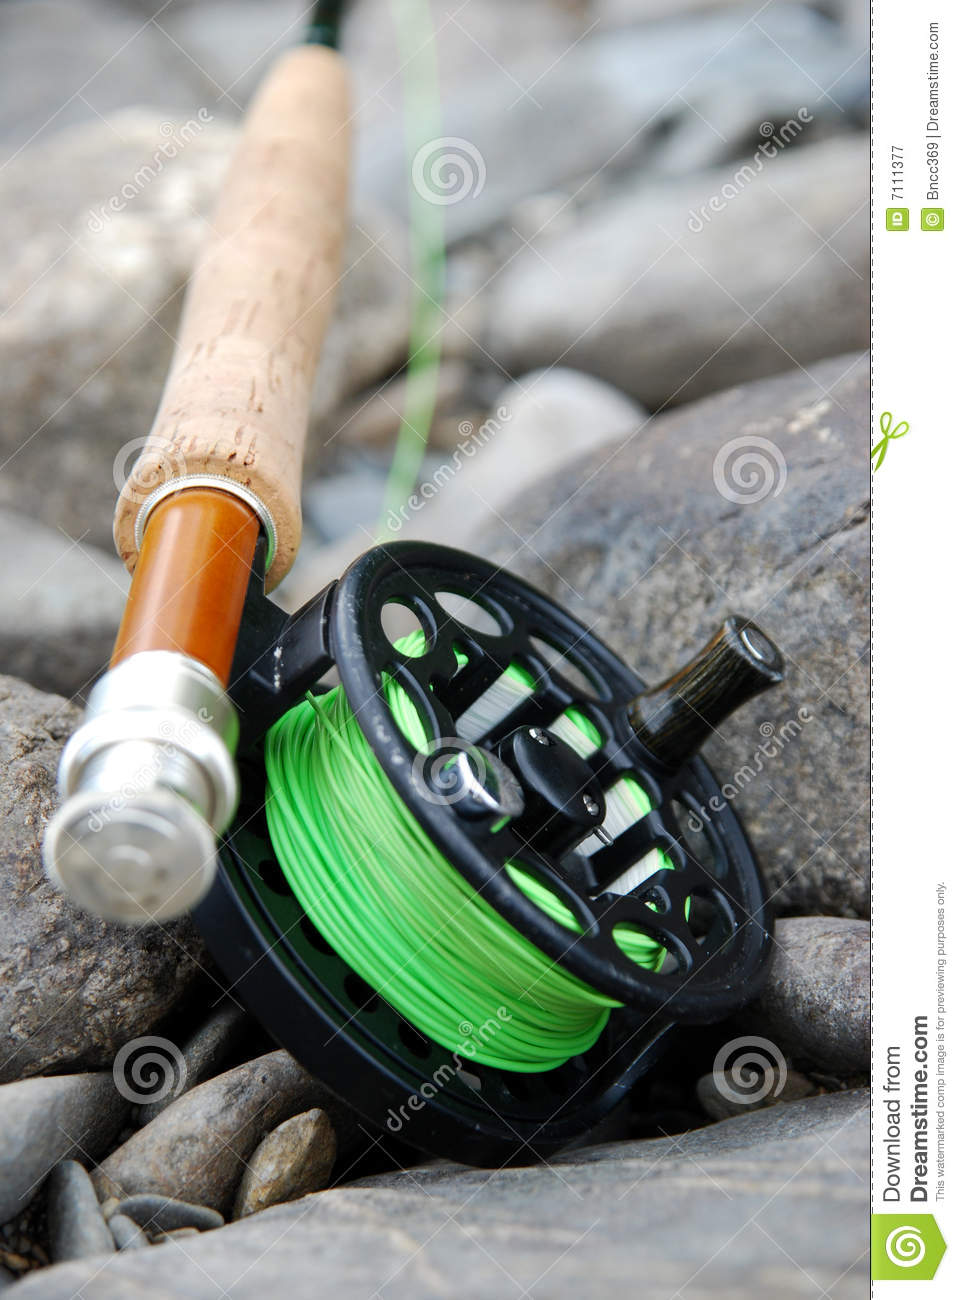 Fly fishing rod and reel stock image image of close for Trout fishing rod and reel